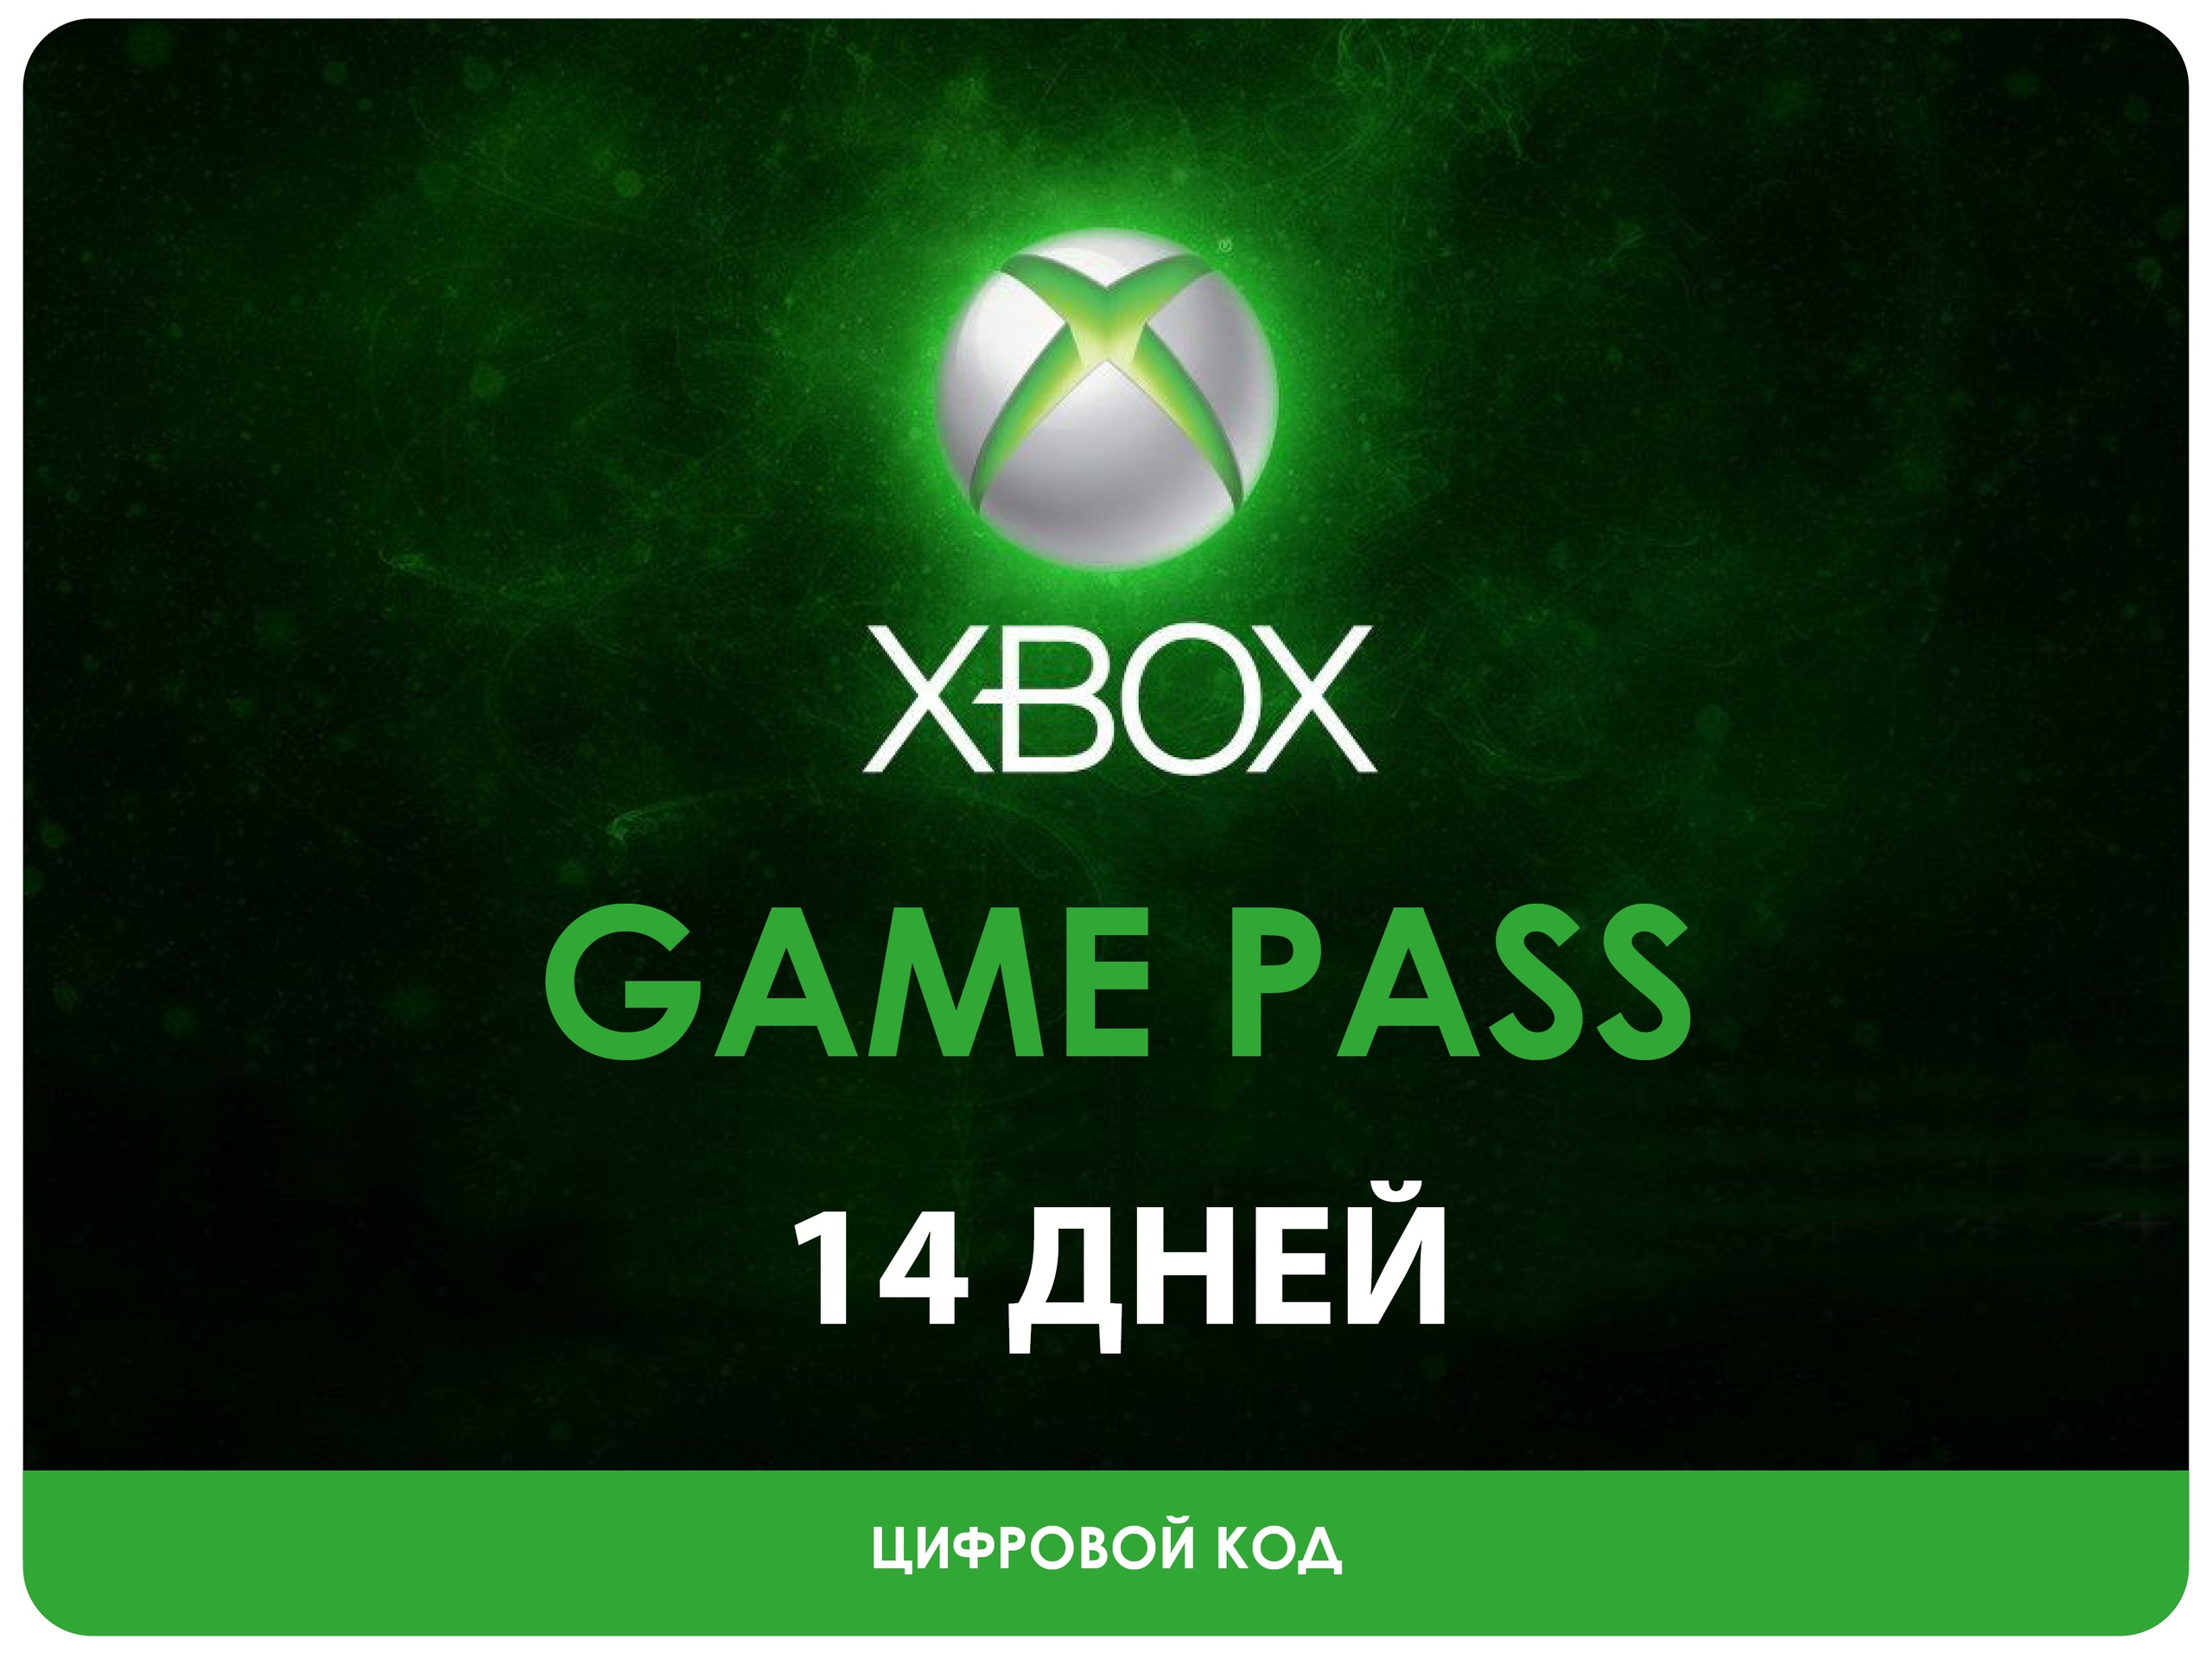 XBOX GAME PASS 14 days + 1 month 🌎 RENEWAL